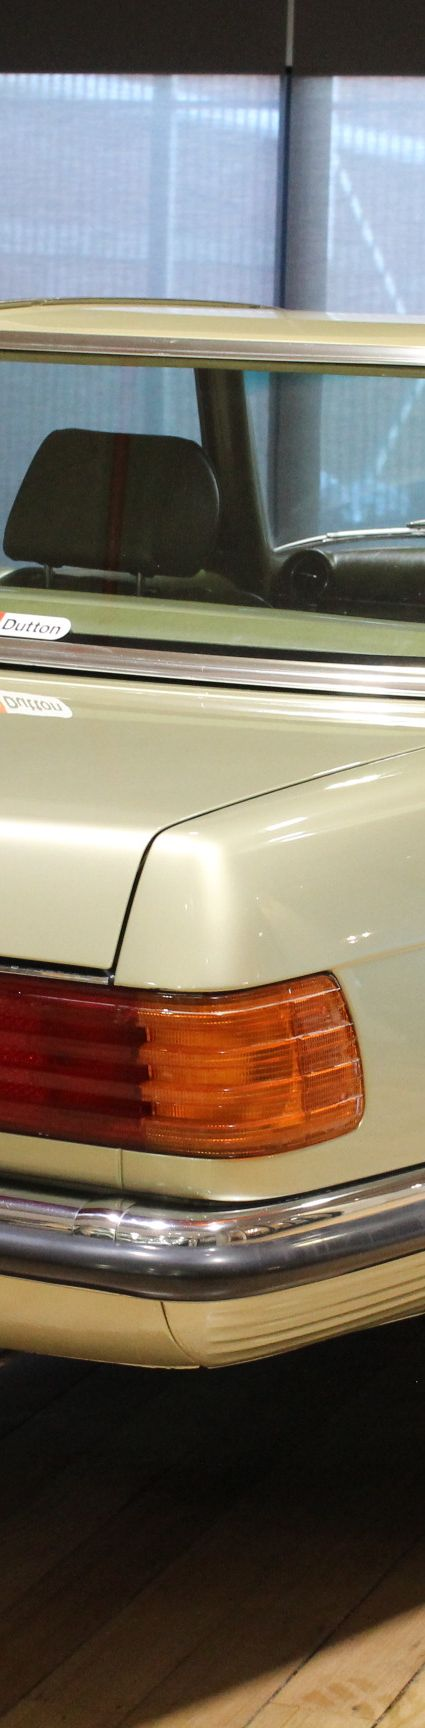 1982 Mercedes Benz 380SL  - for sale in Australia